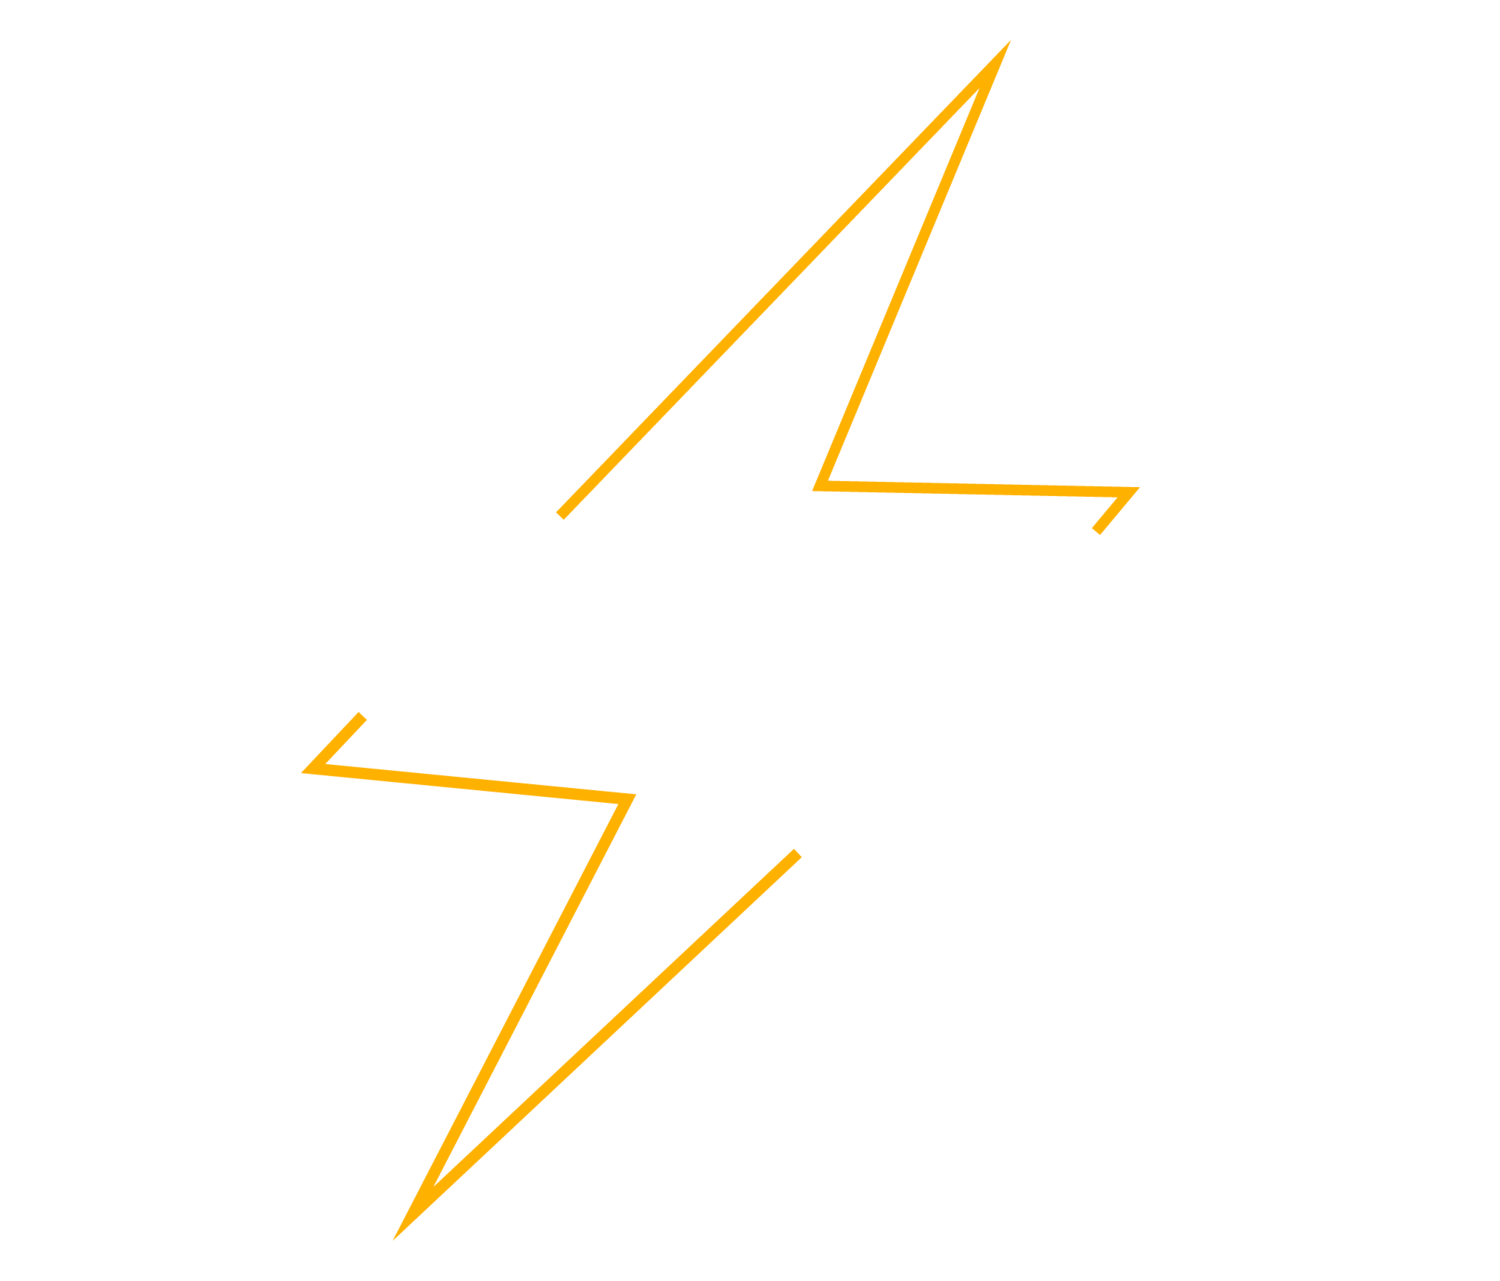 Graystone Students